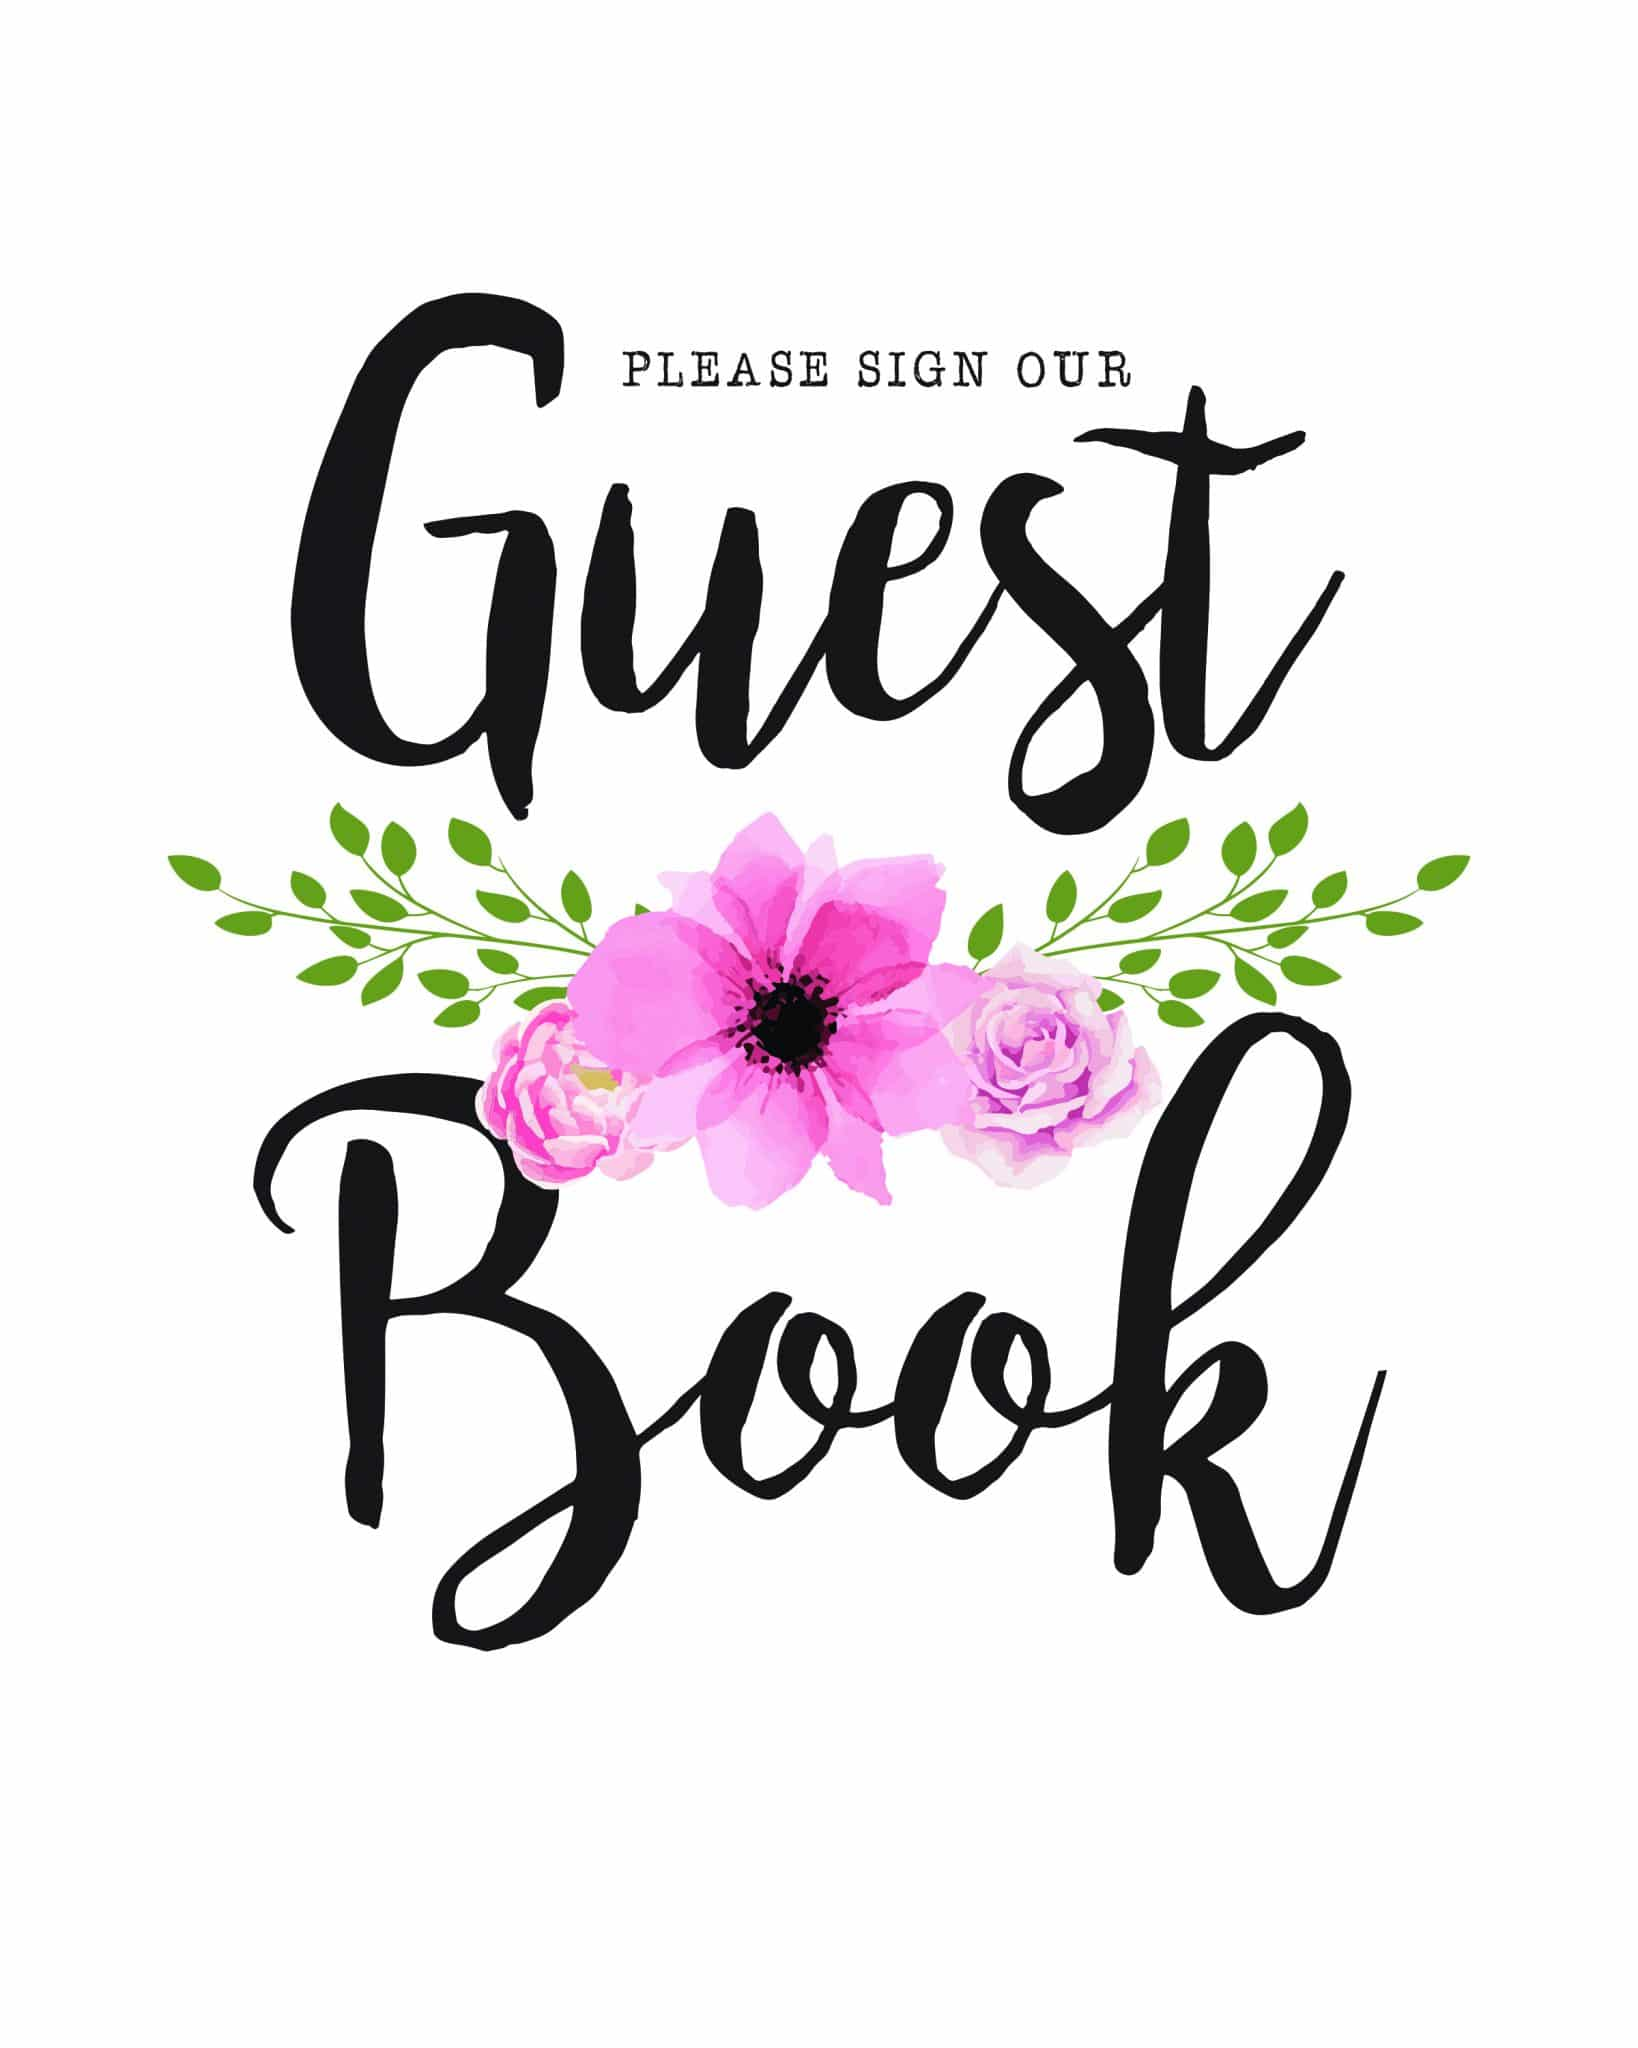 Please sign our guestbook floral theme